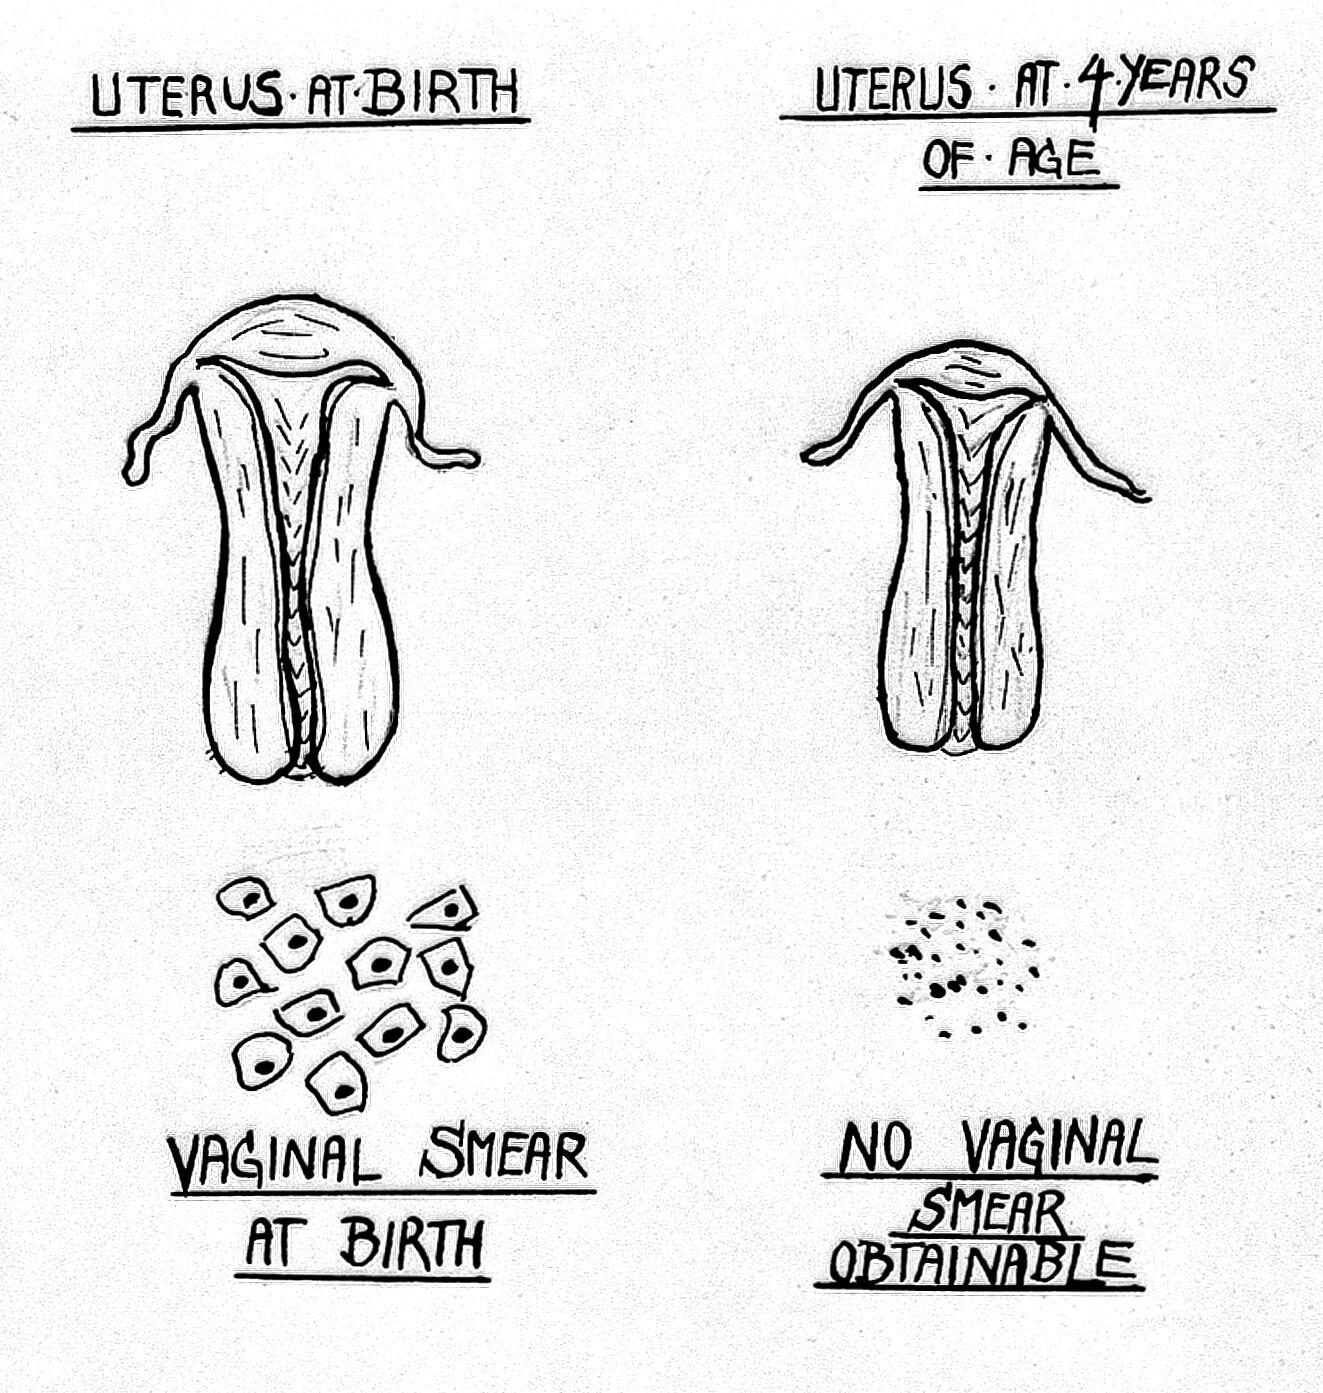 Chart of the uterus at birth and at 4 years  | Wellcome Collection